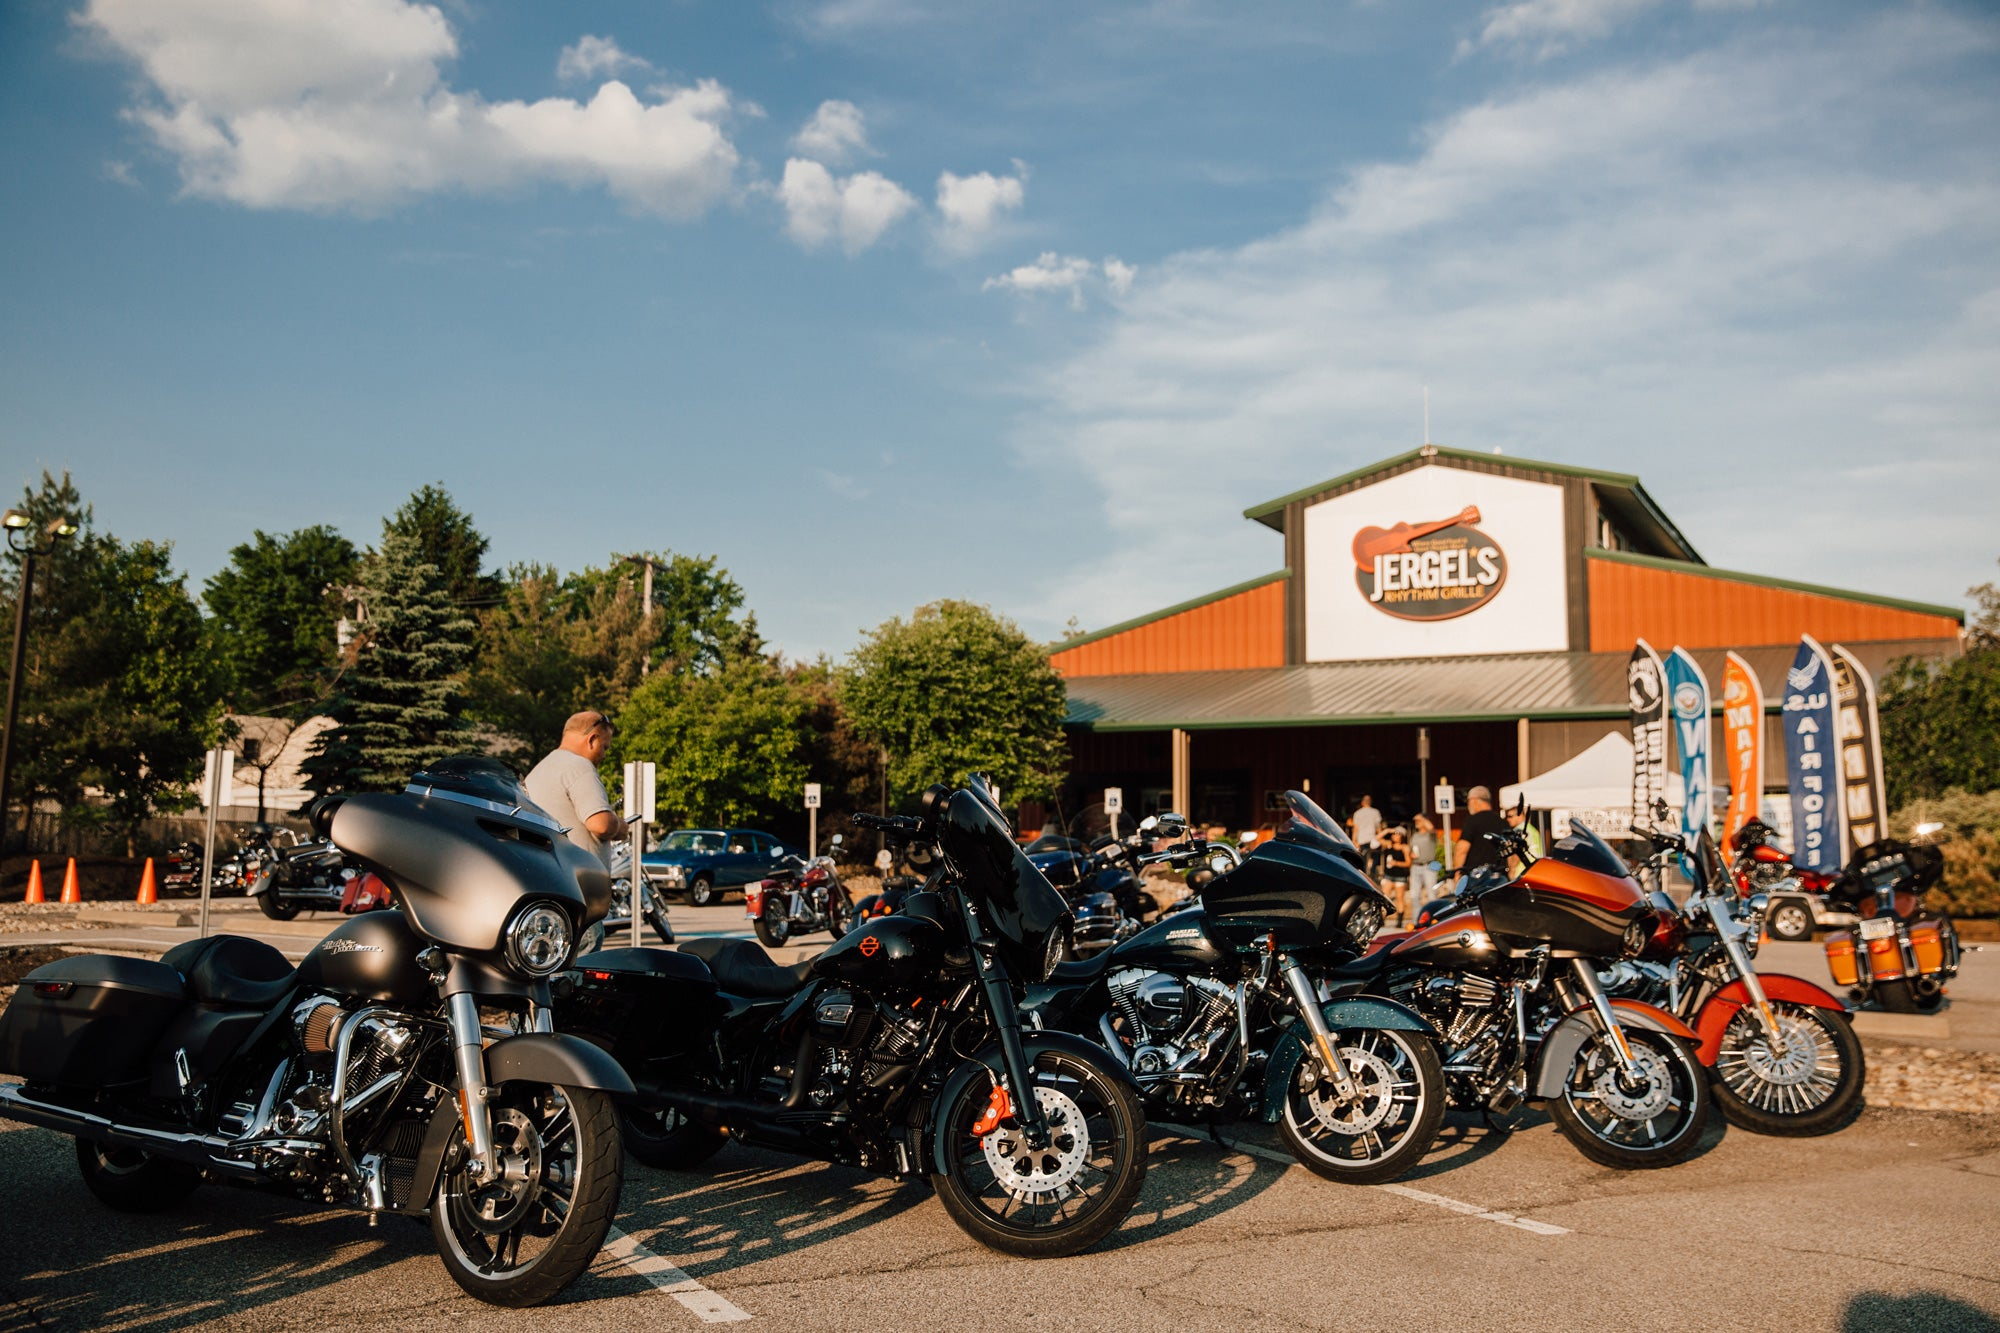 Jergels Rhythm Grille Warrendale Pennsylvania Bike Night